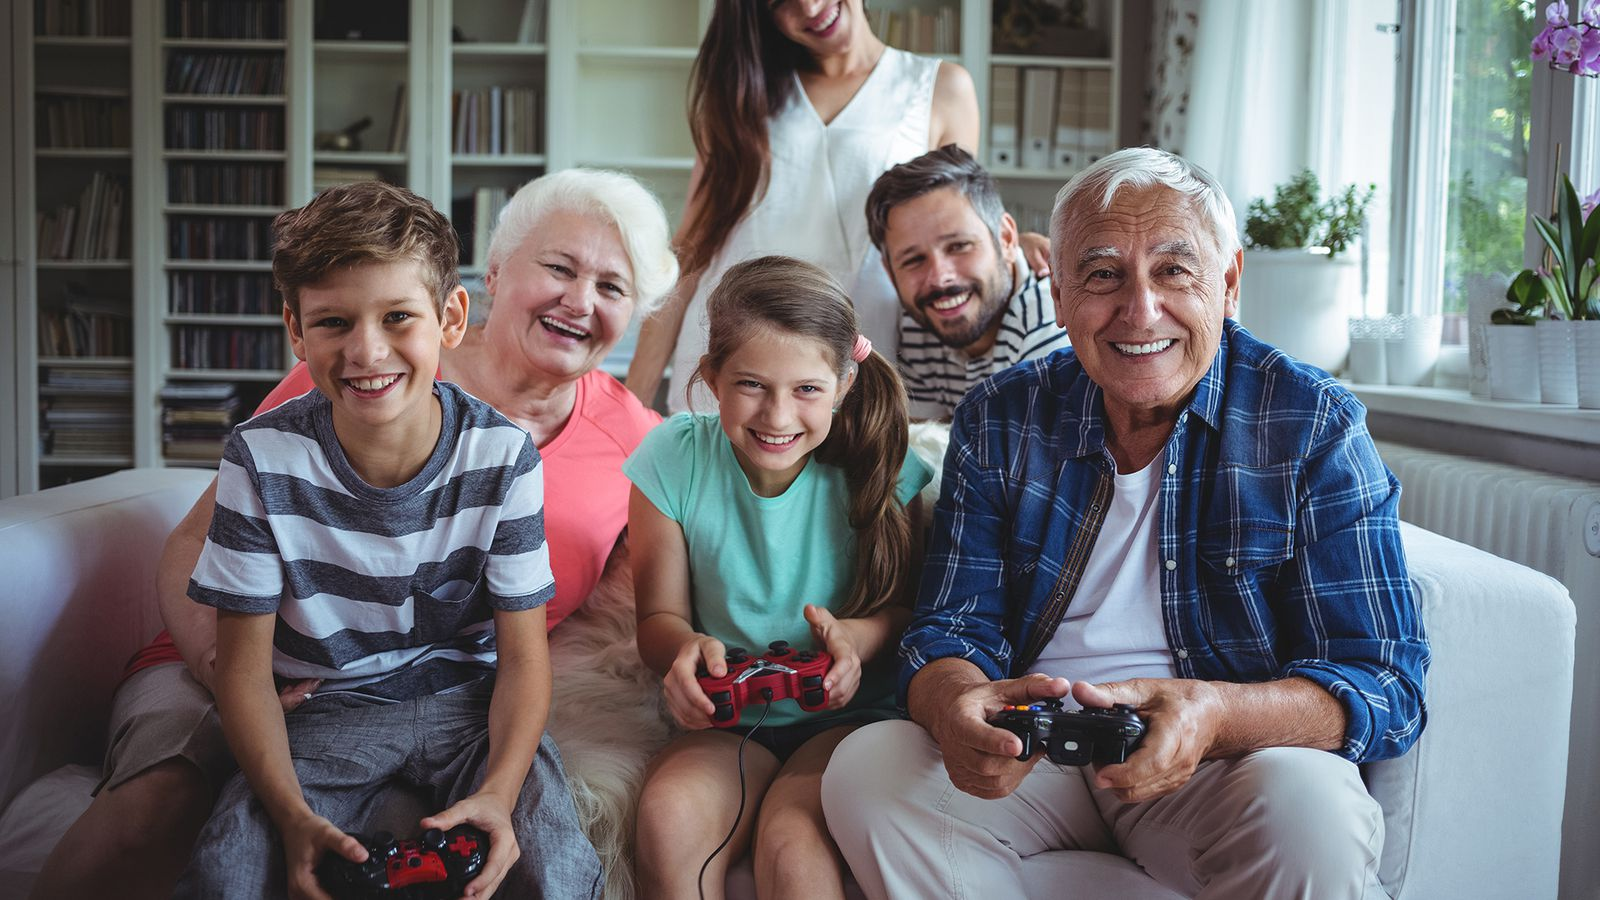 Great games to play with your family and friends on